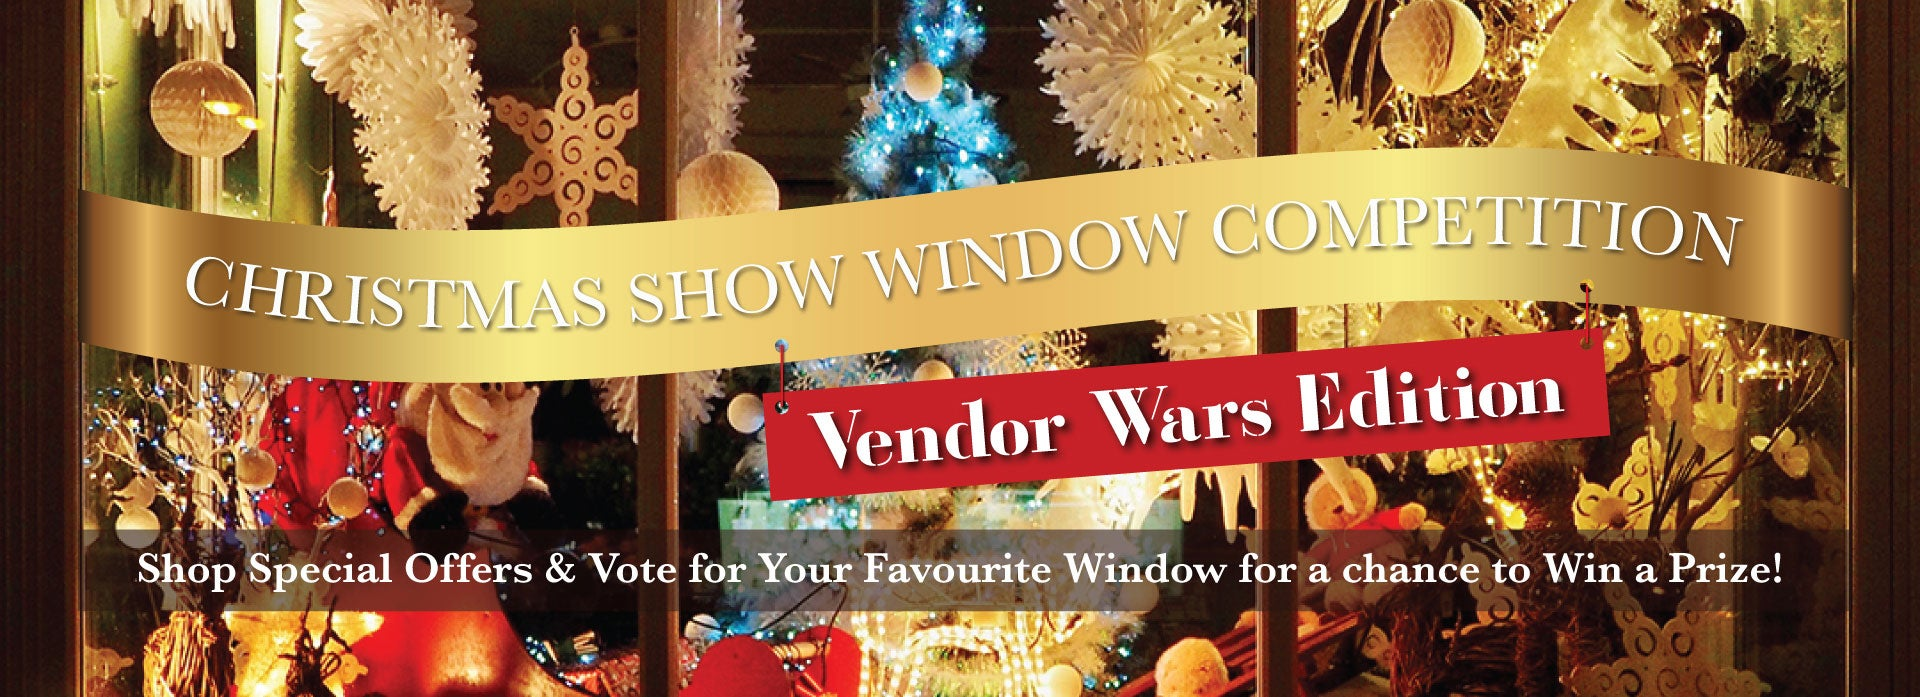 Christmas Show Windows Vendor Wars